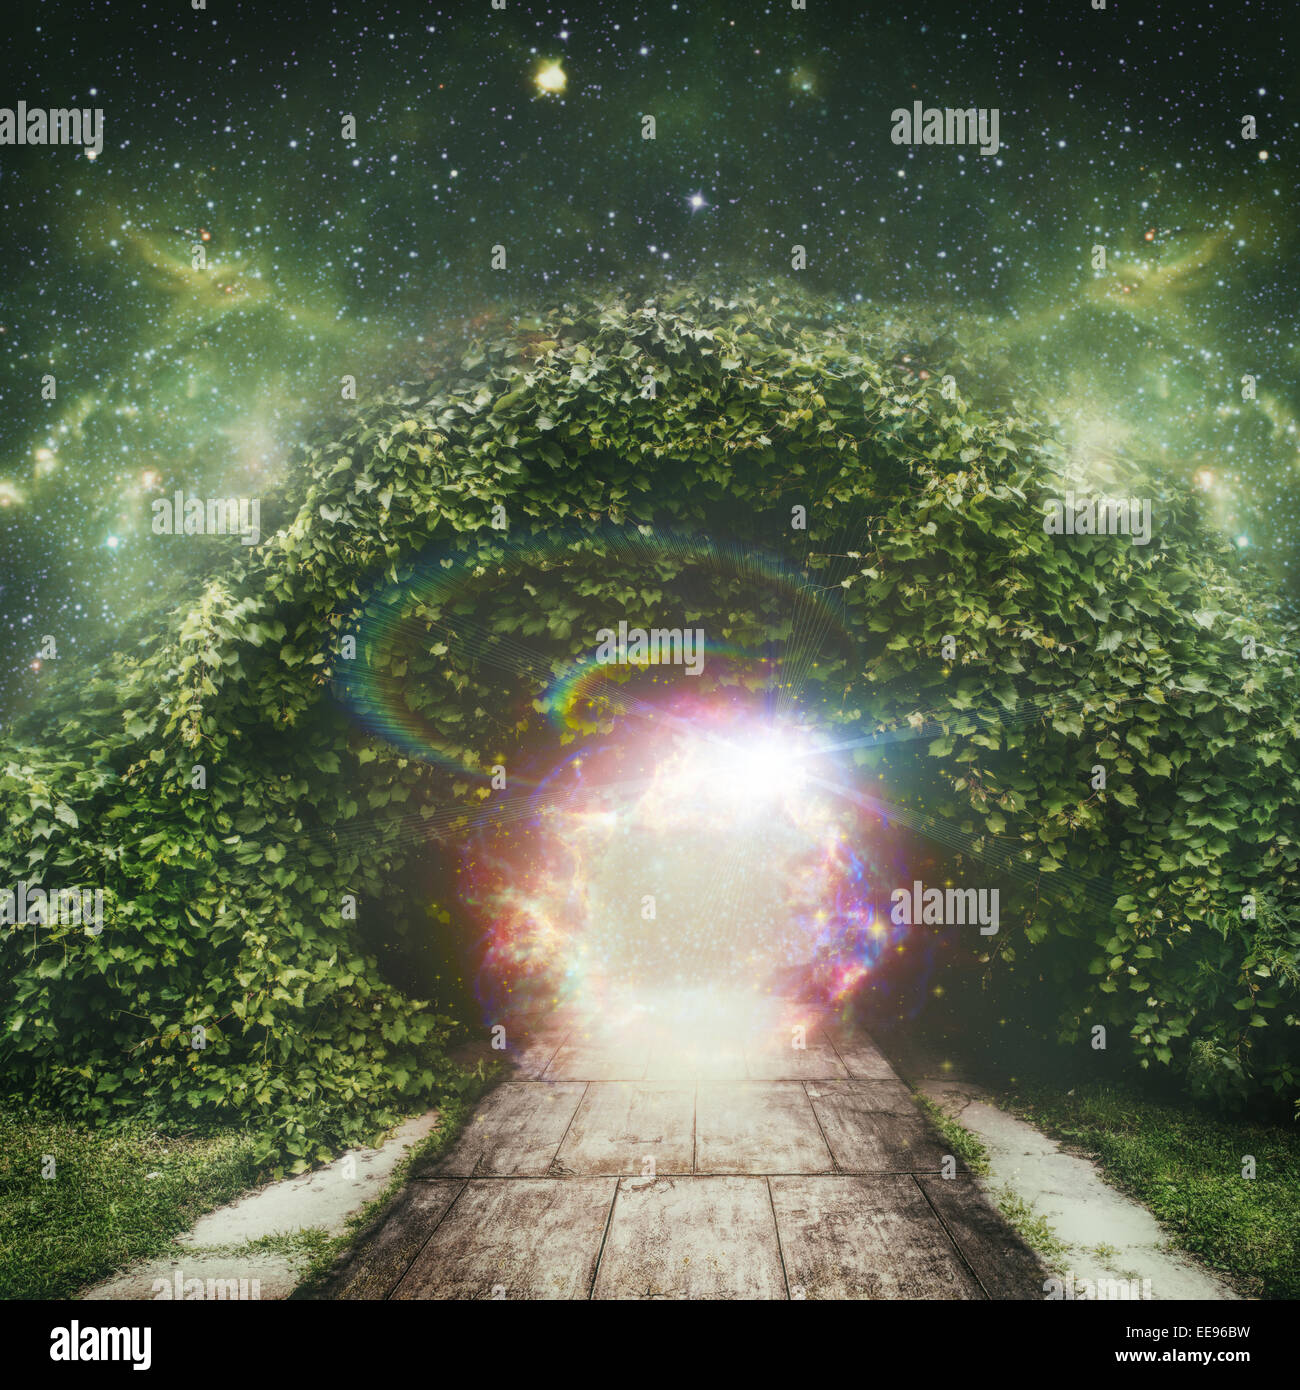 portal to another universe, abstract spiritual backgrounds - Stock Image